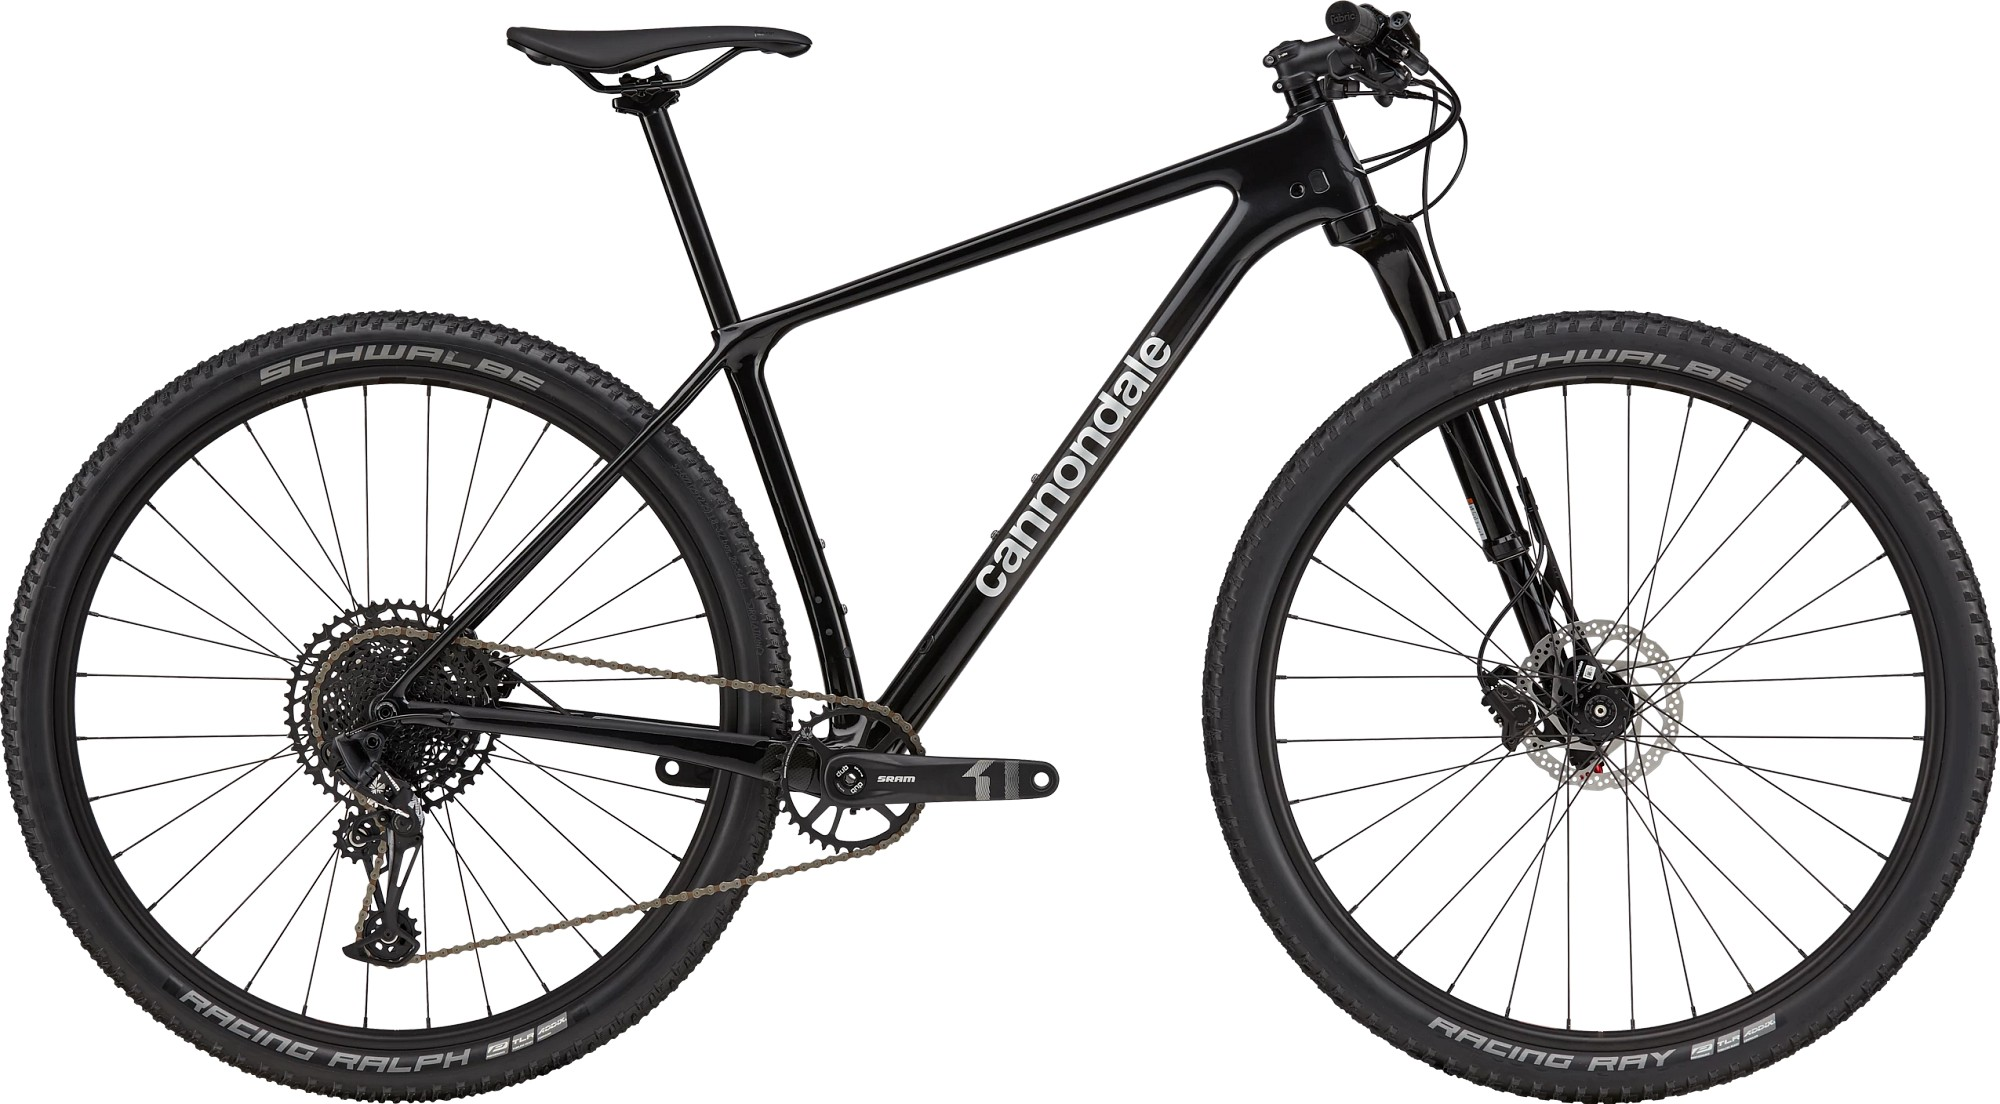 Bicicleta de munte hardtail Cannondale F-SI Carbon 4 Argintiu 2021 imagine